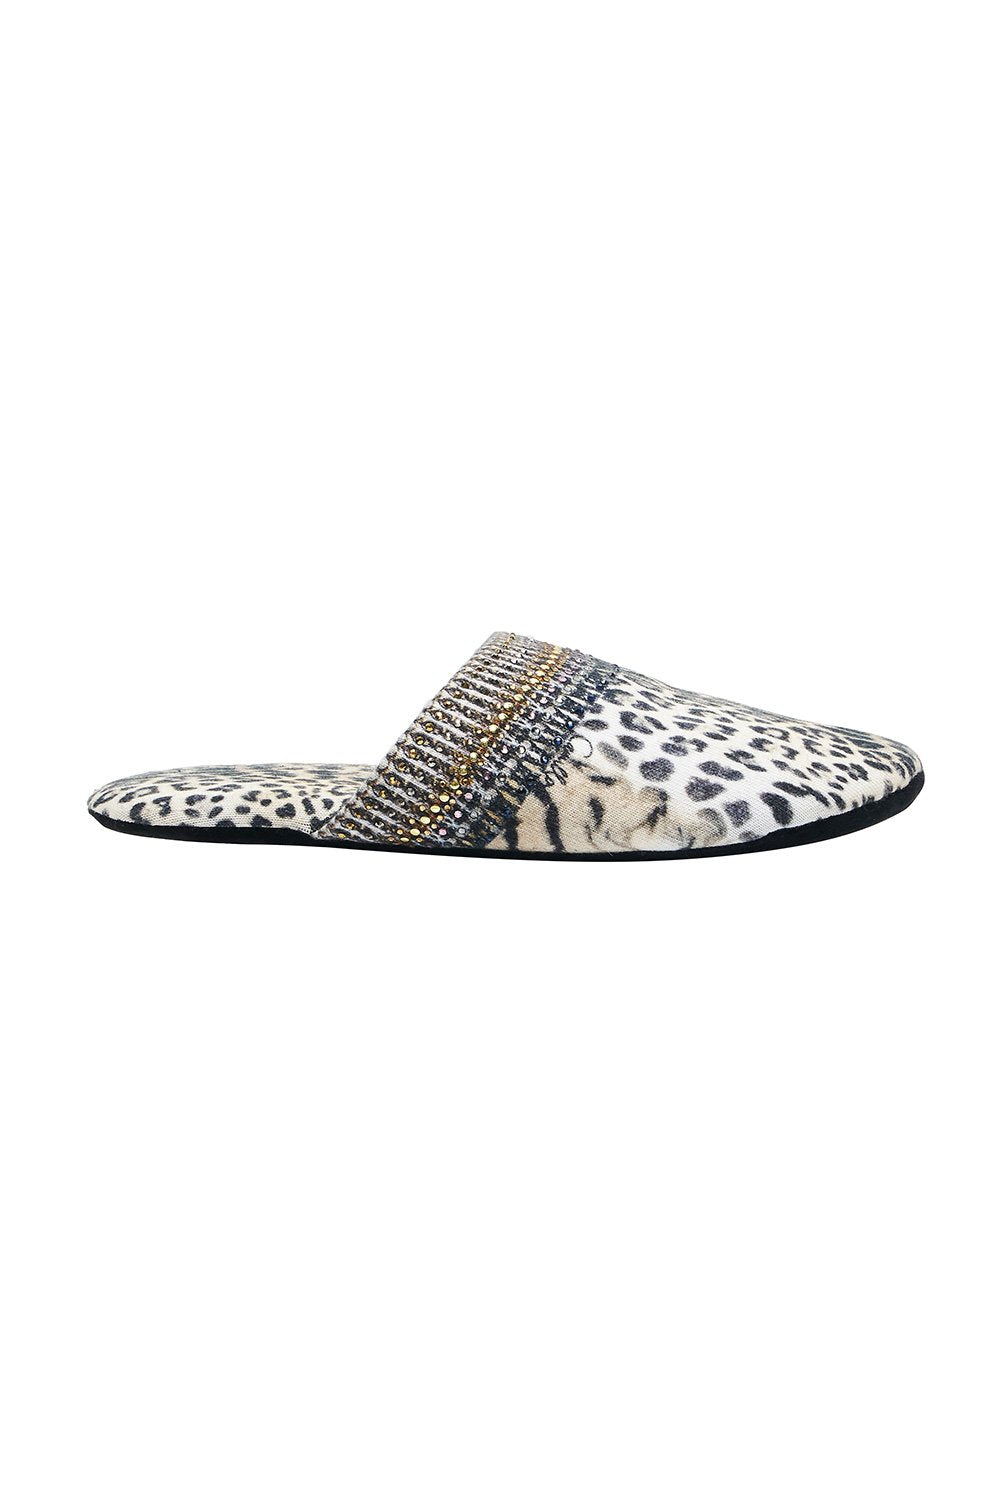 LOUNGEWEAR SLIPPER JAGUAR